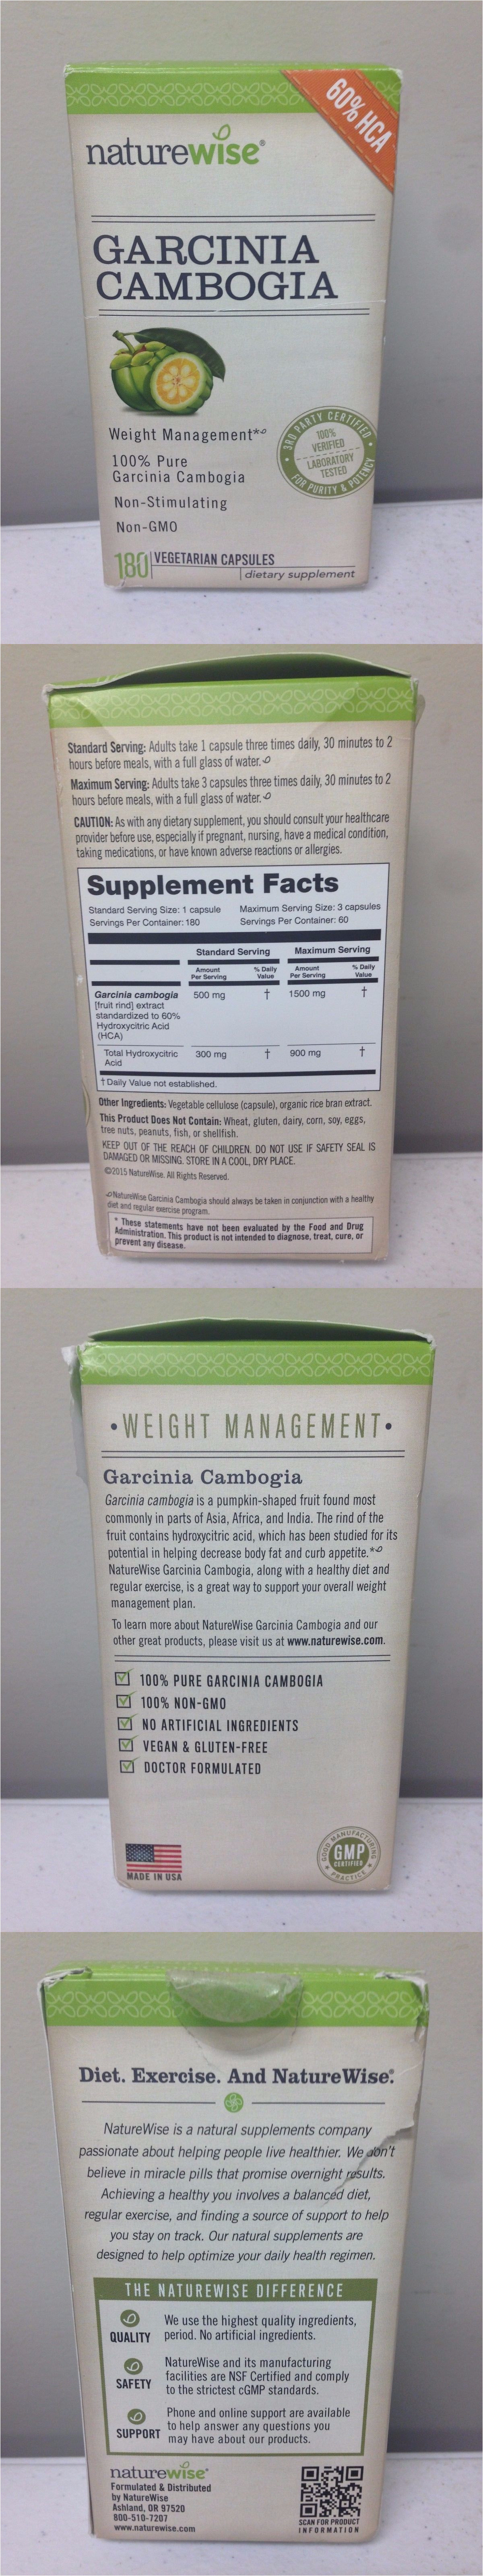 Where to Buy Follinique Appetite Control Suppressants Naturewise Garcinia Cambogia Extract